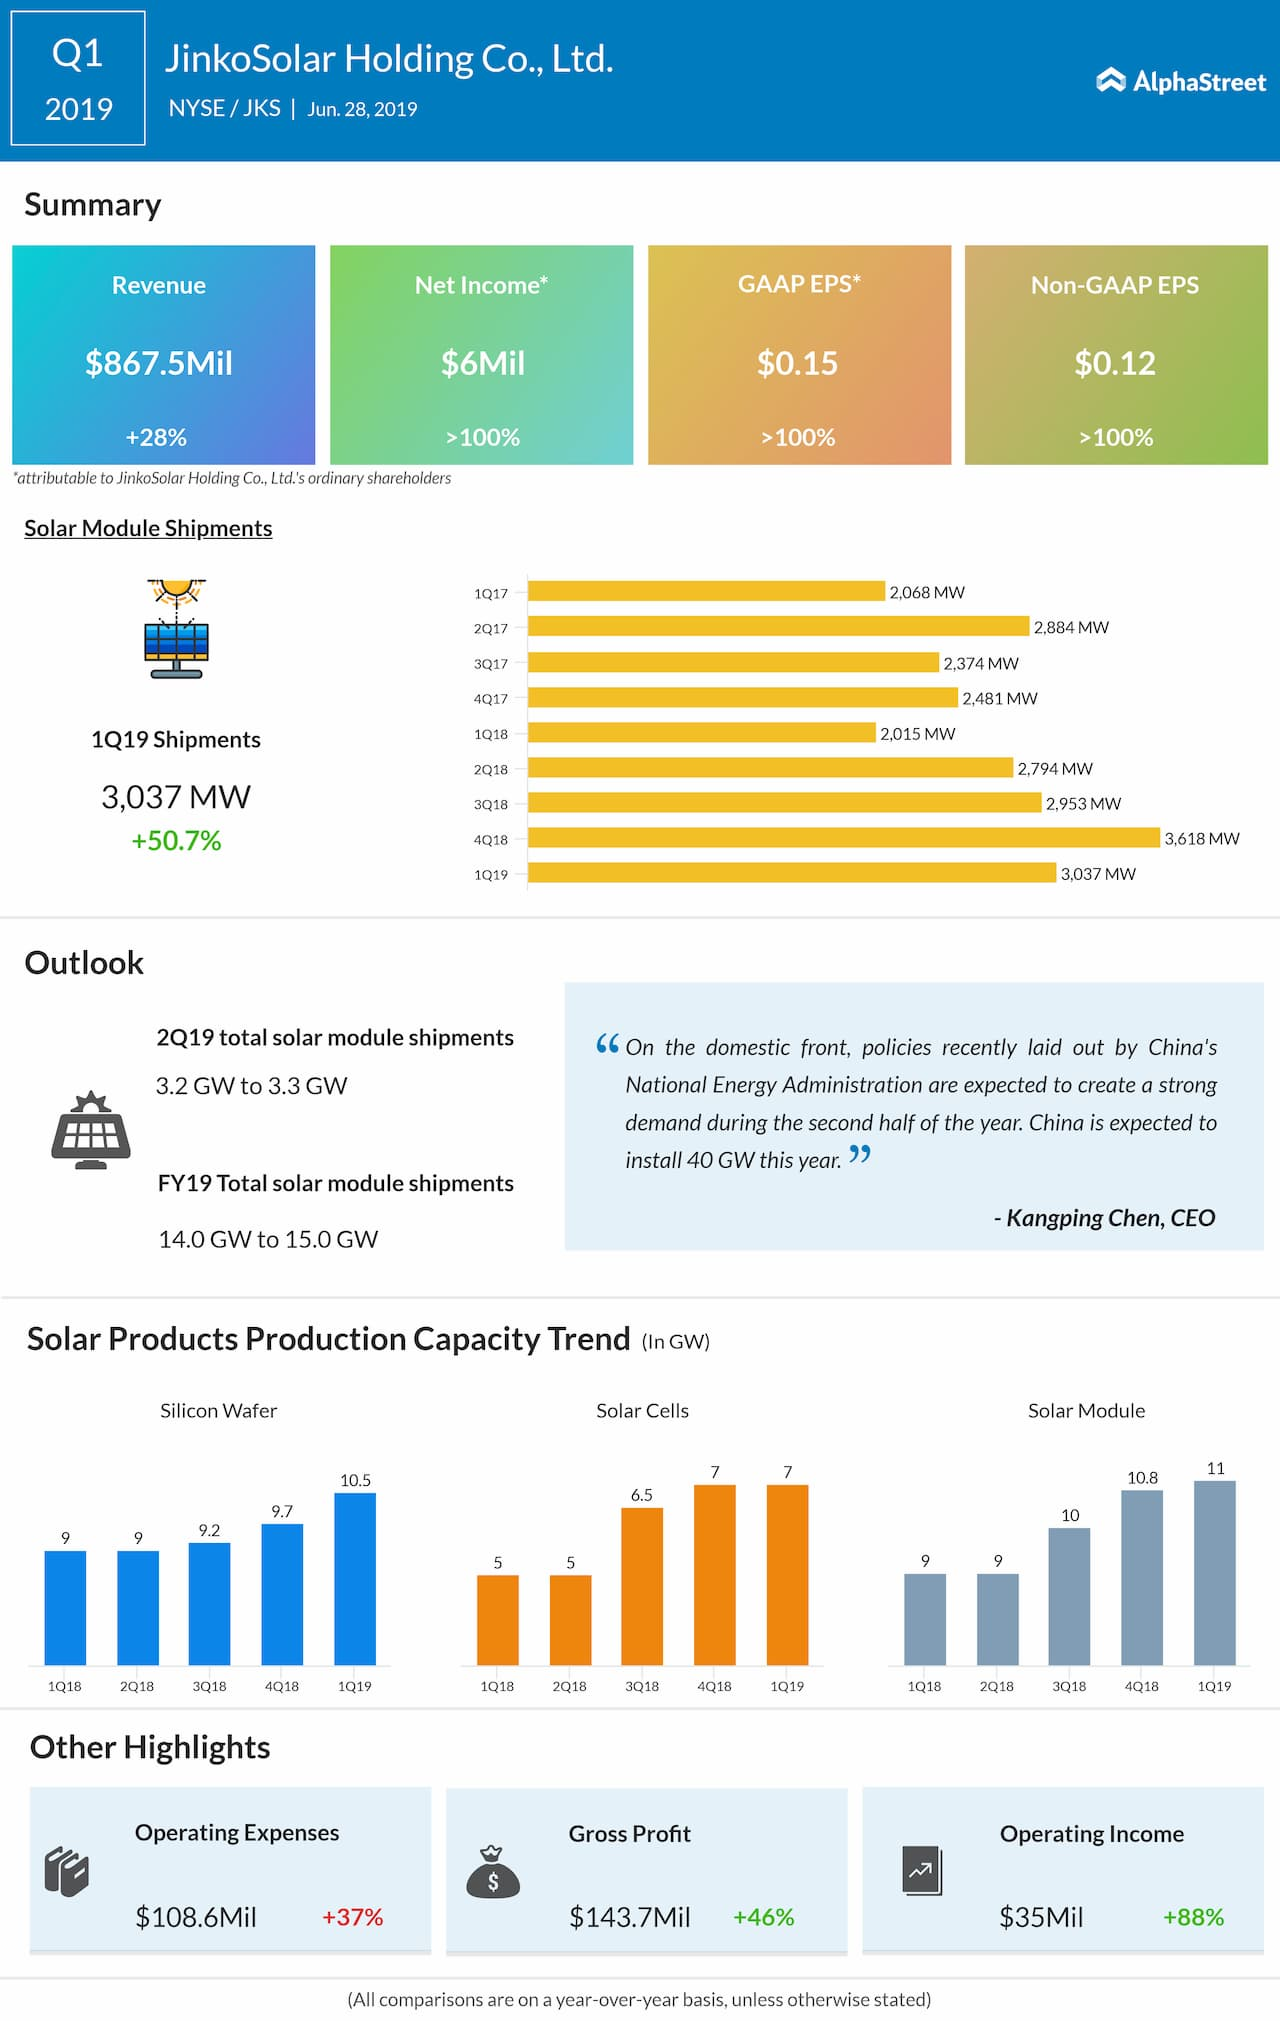 JinkoSolar (JKS) Q2 earnings preview: What to expect